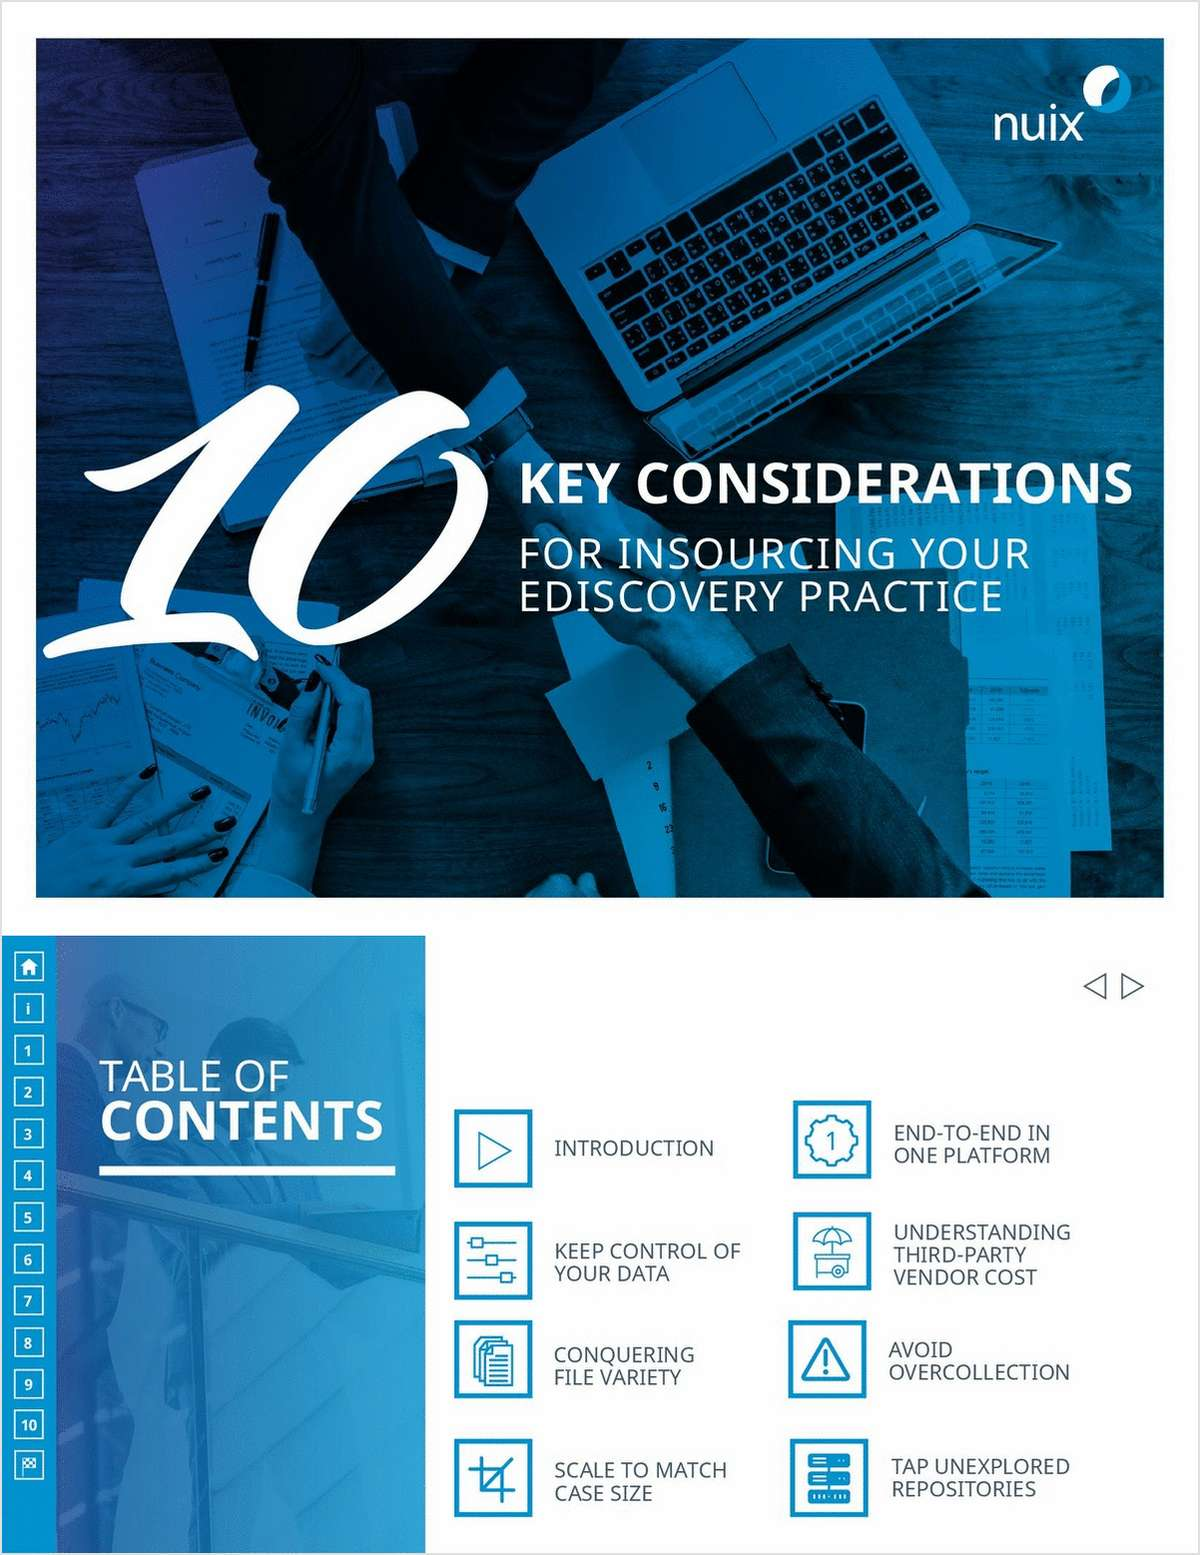 10 Key considerations for Insourcing Your Ediscovery Practice